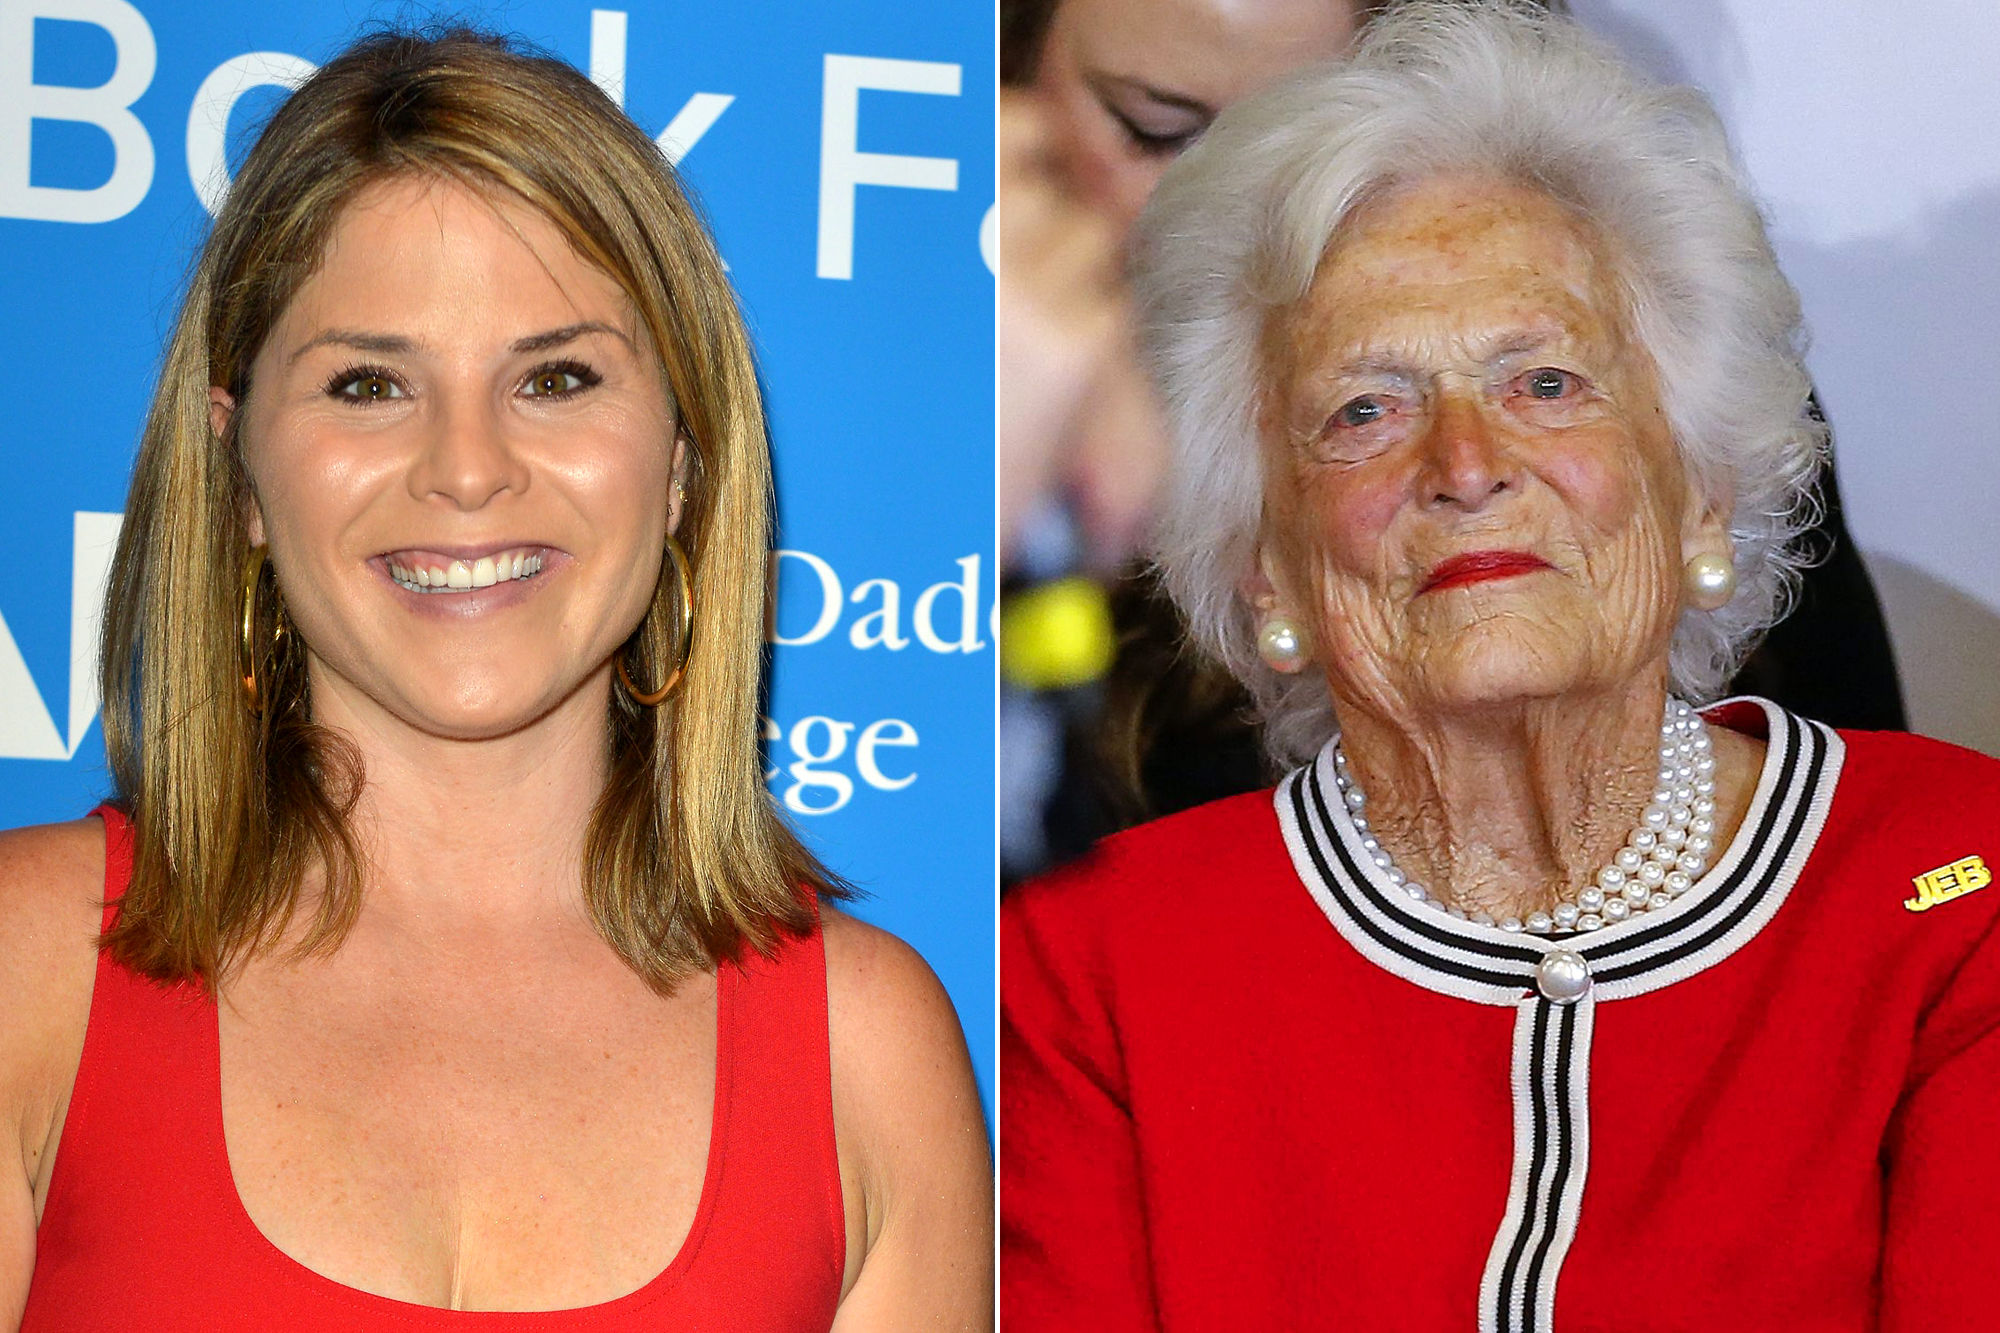 Emotional Jenna Bush Hager Says Barbara Bush Is 'in Great Spirits' After Announcing Failing Health